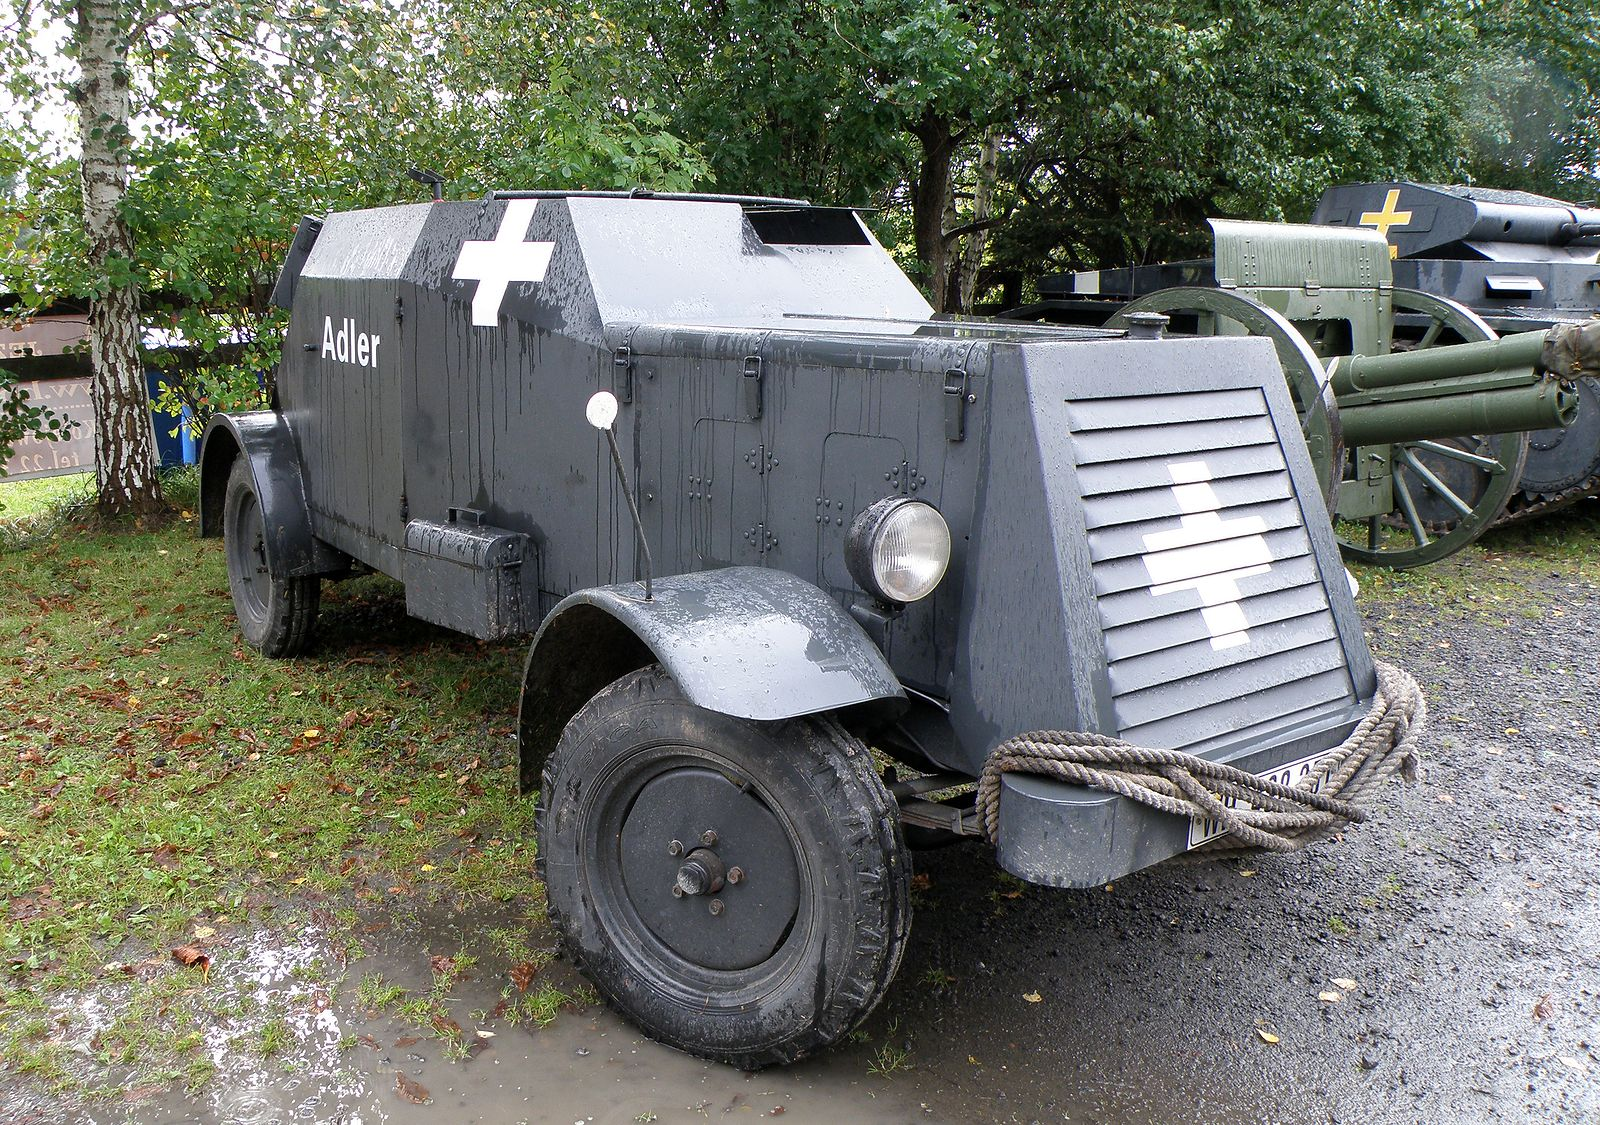 Adler Kfz.13 replica in Poland